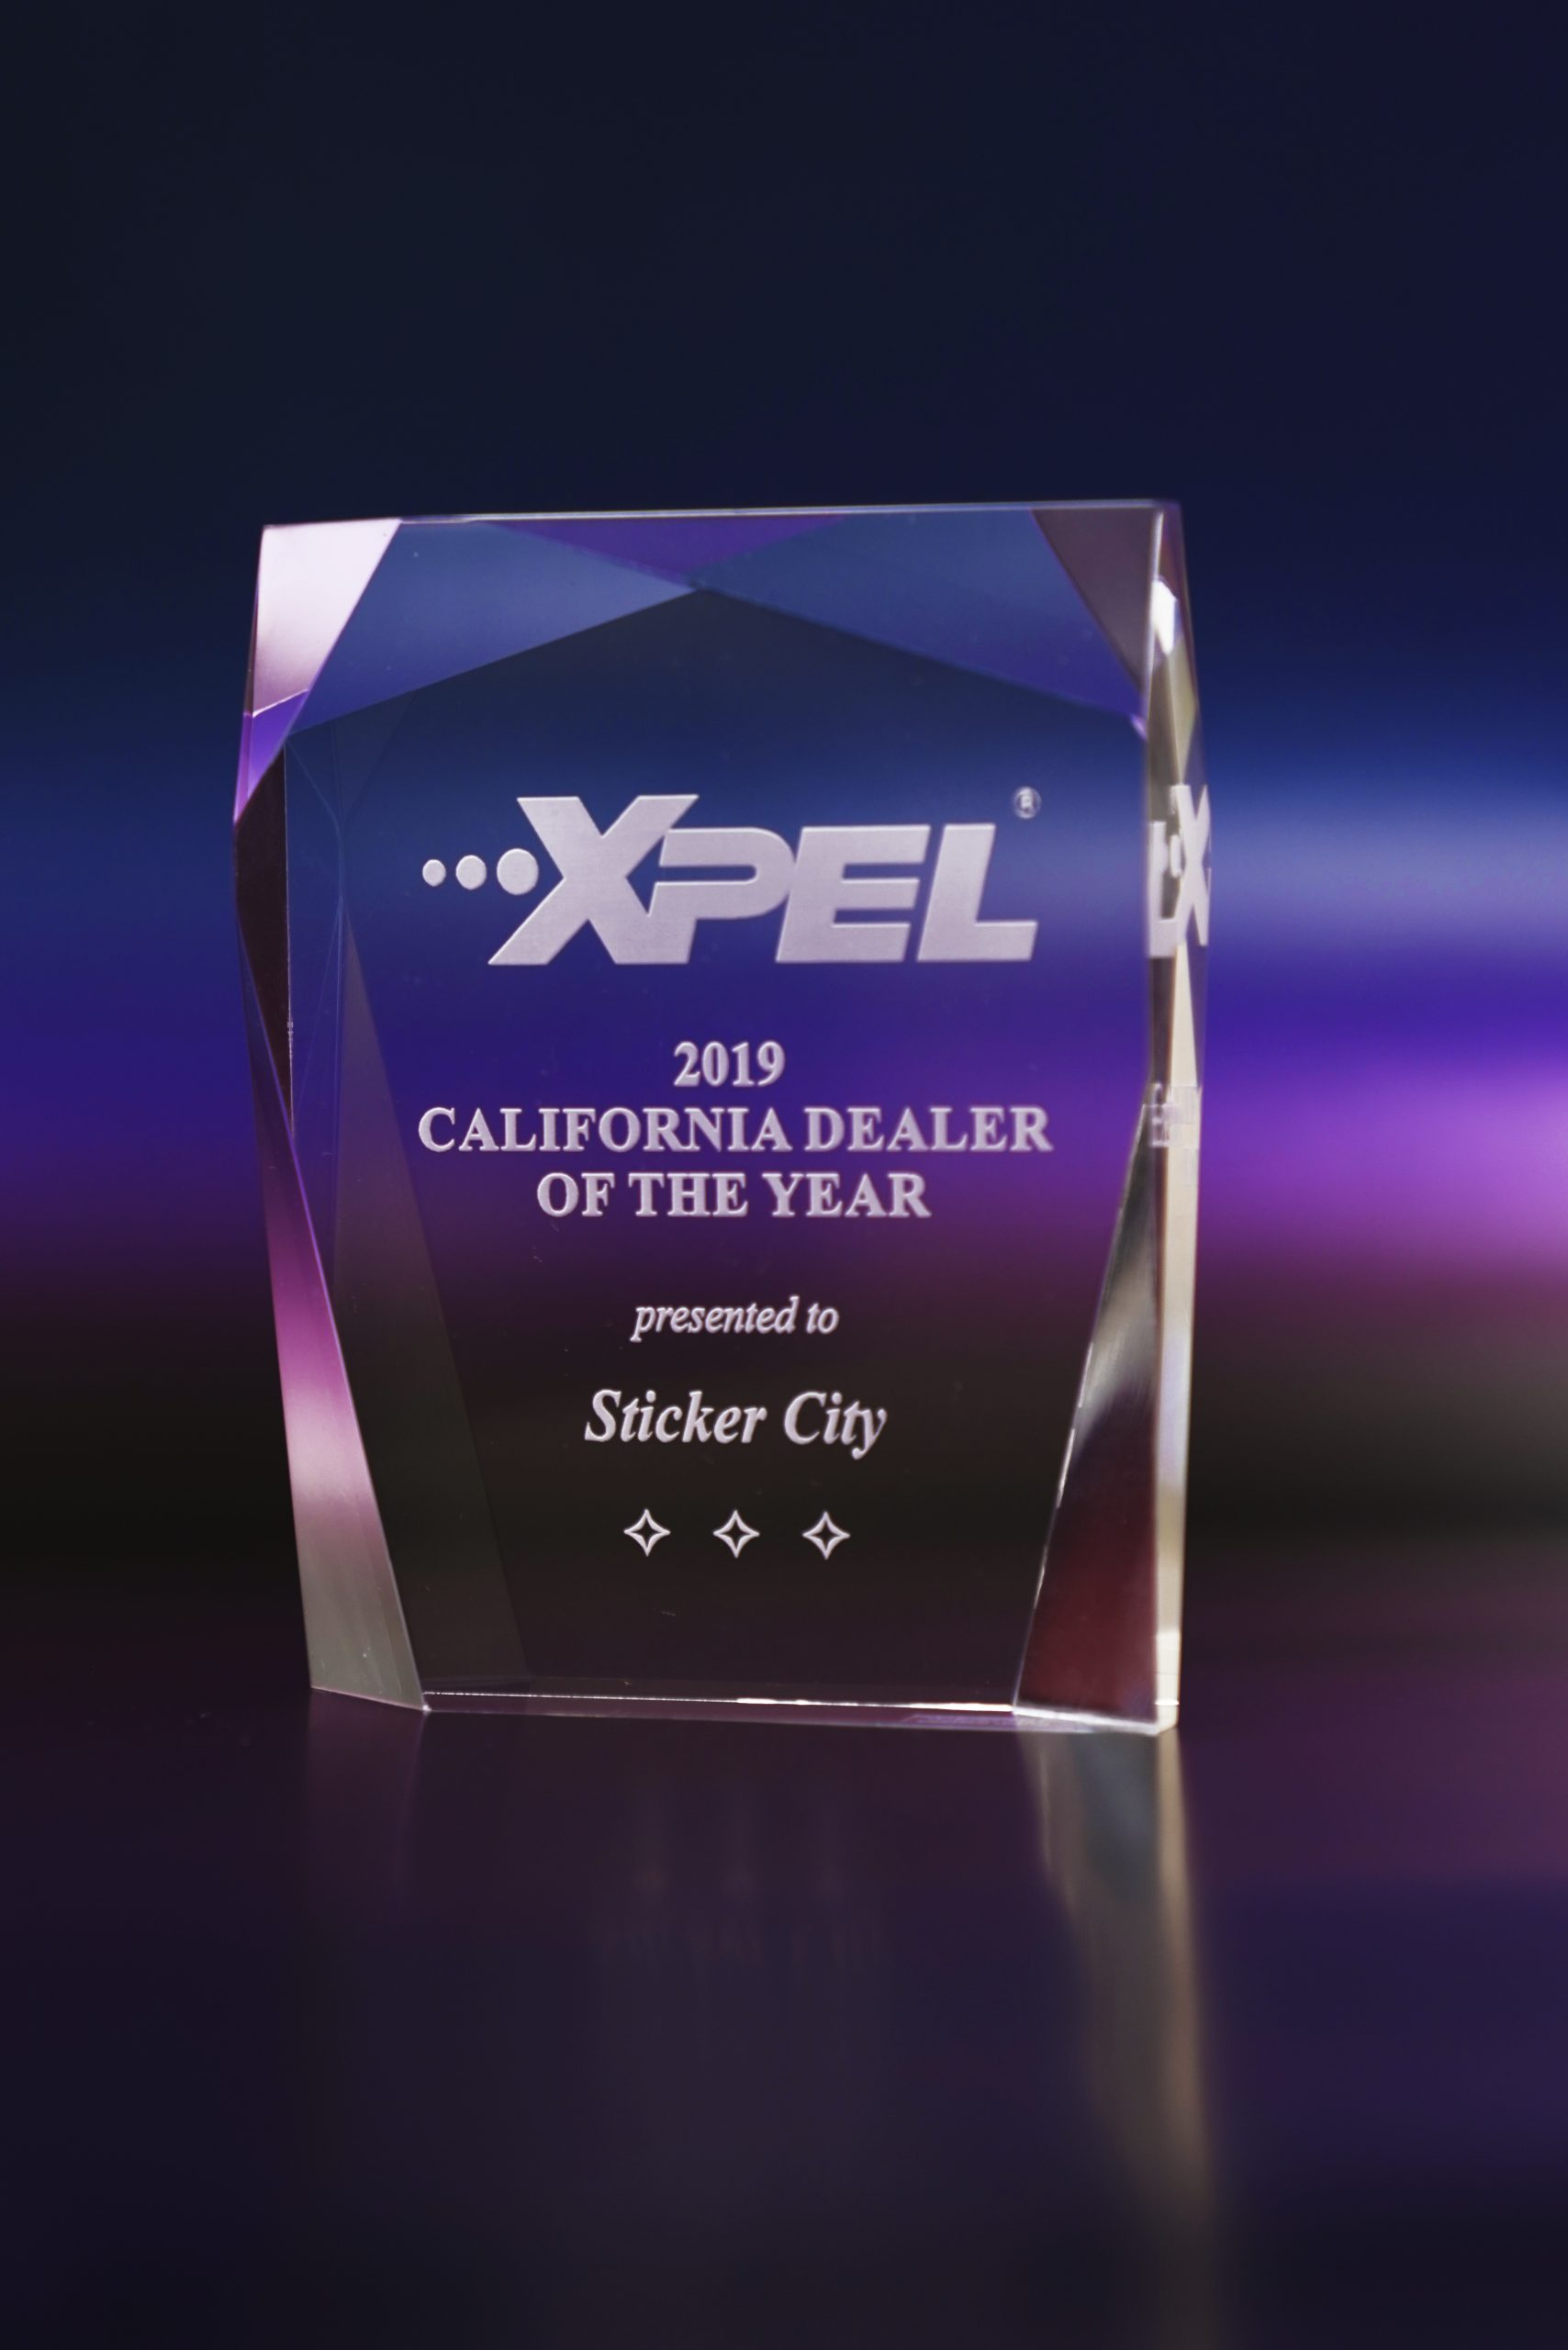 XPEL 2019 California Dealer of the Year: Sticker City